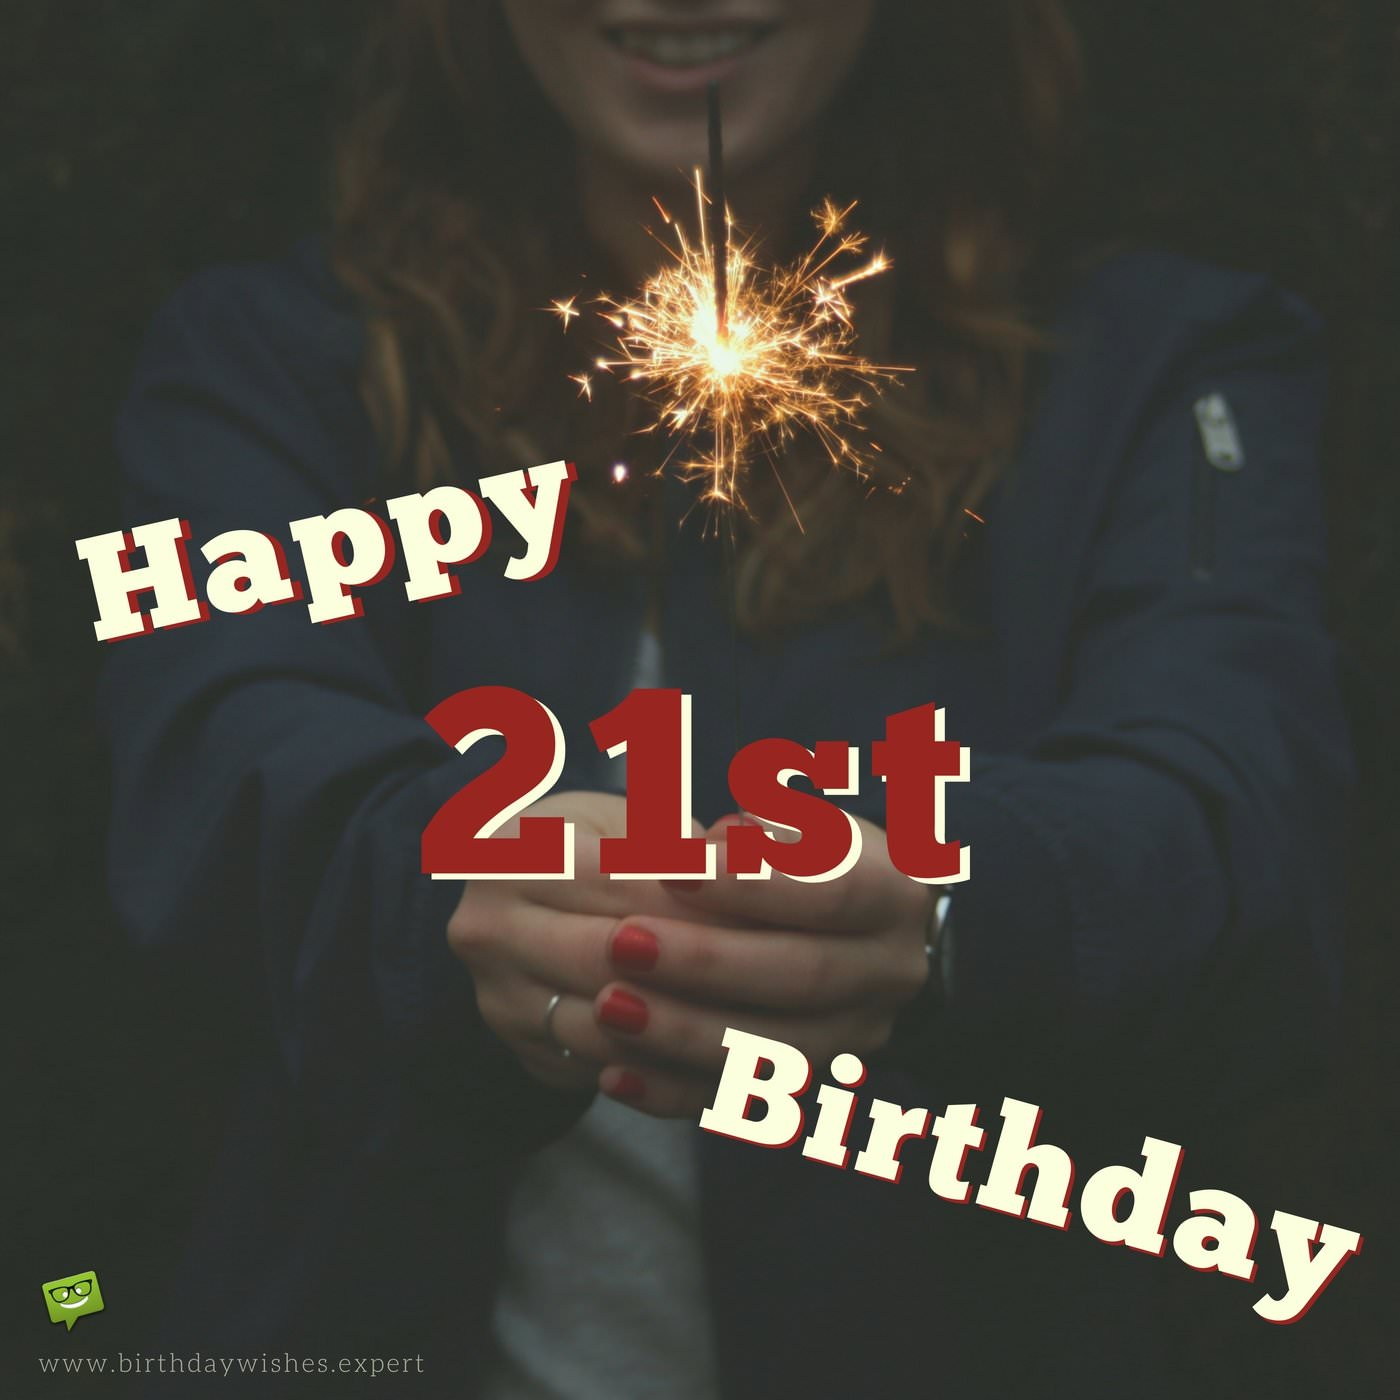 Funny 21st Birthday Cards: Birthday Wishes For 21st Birthday